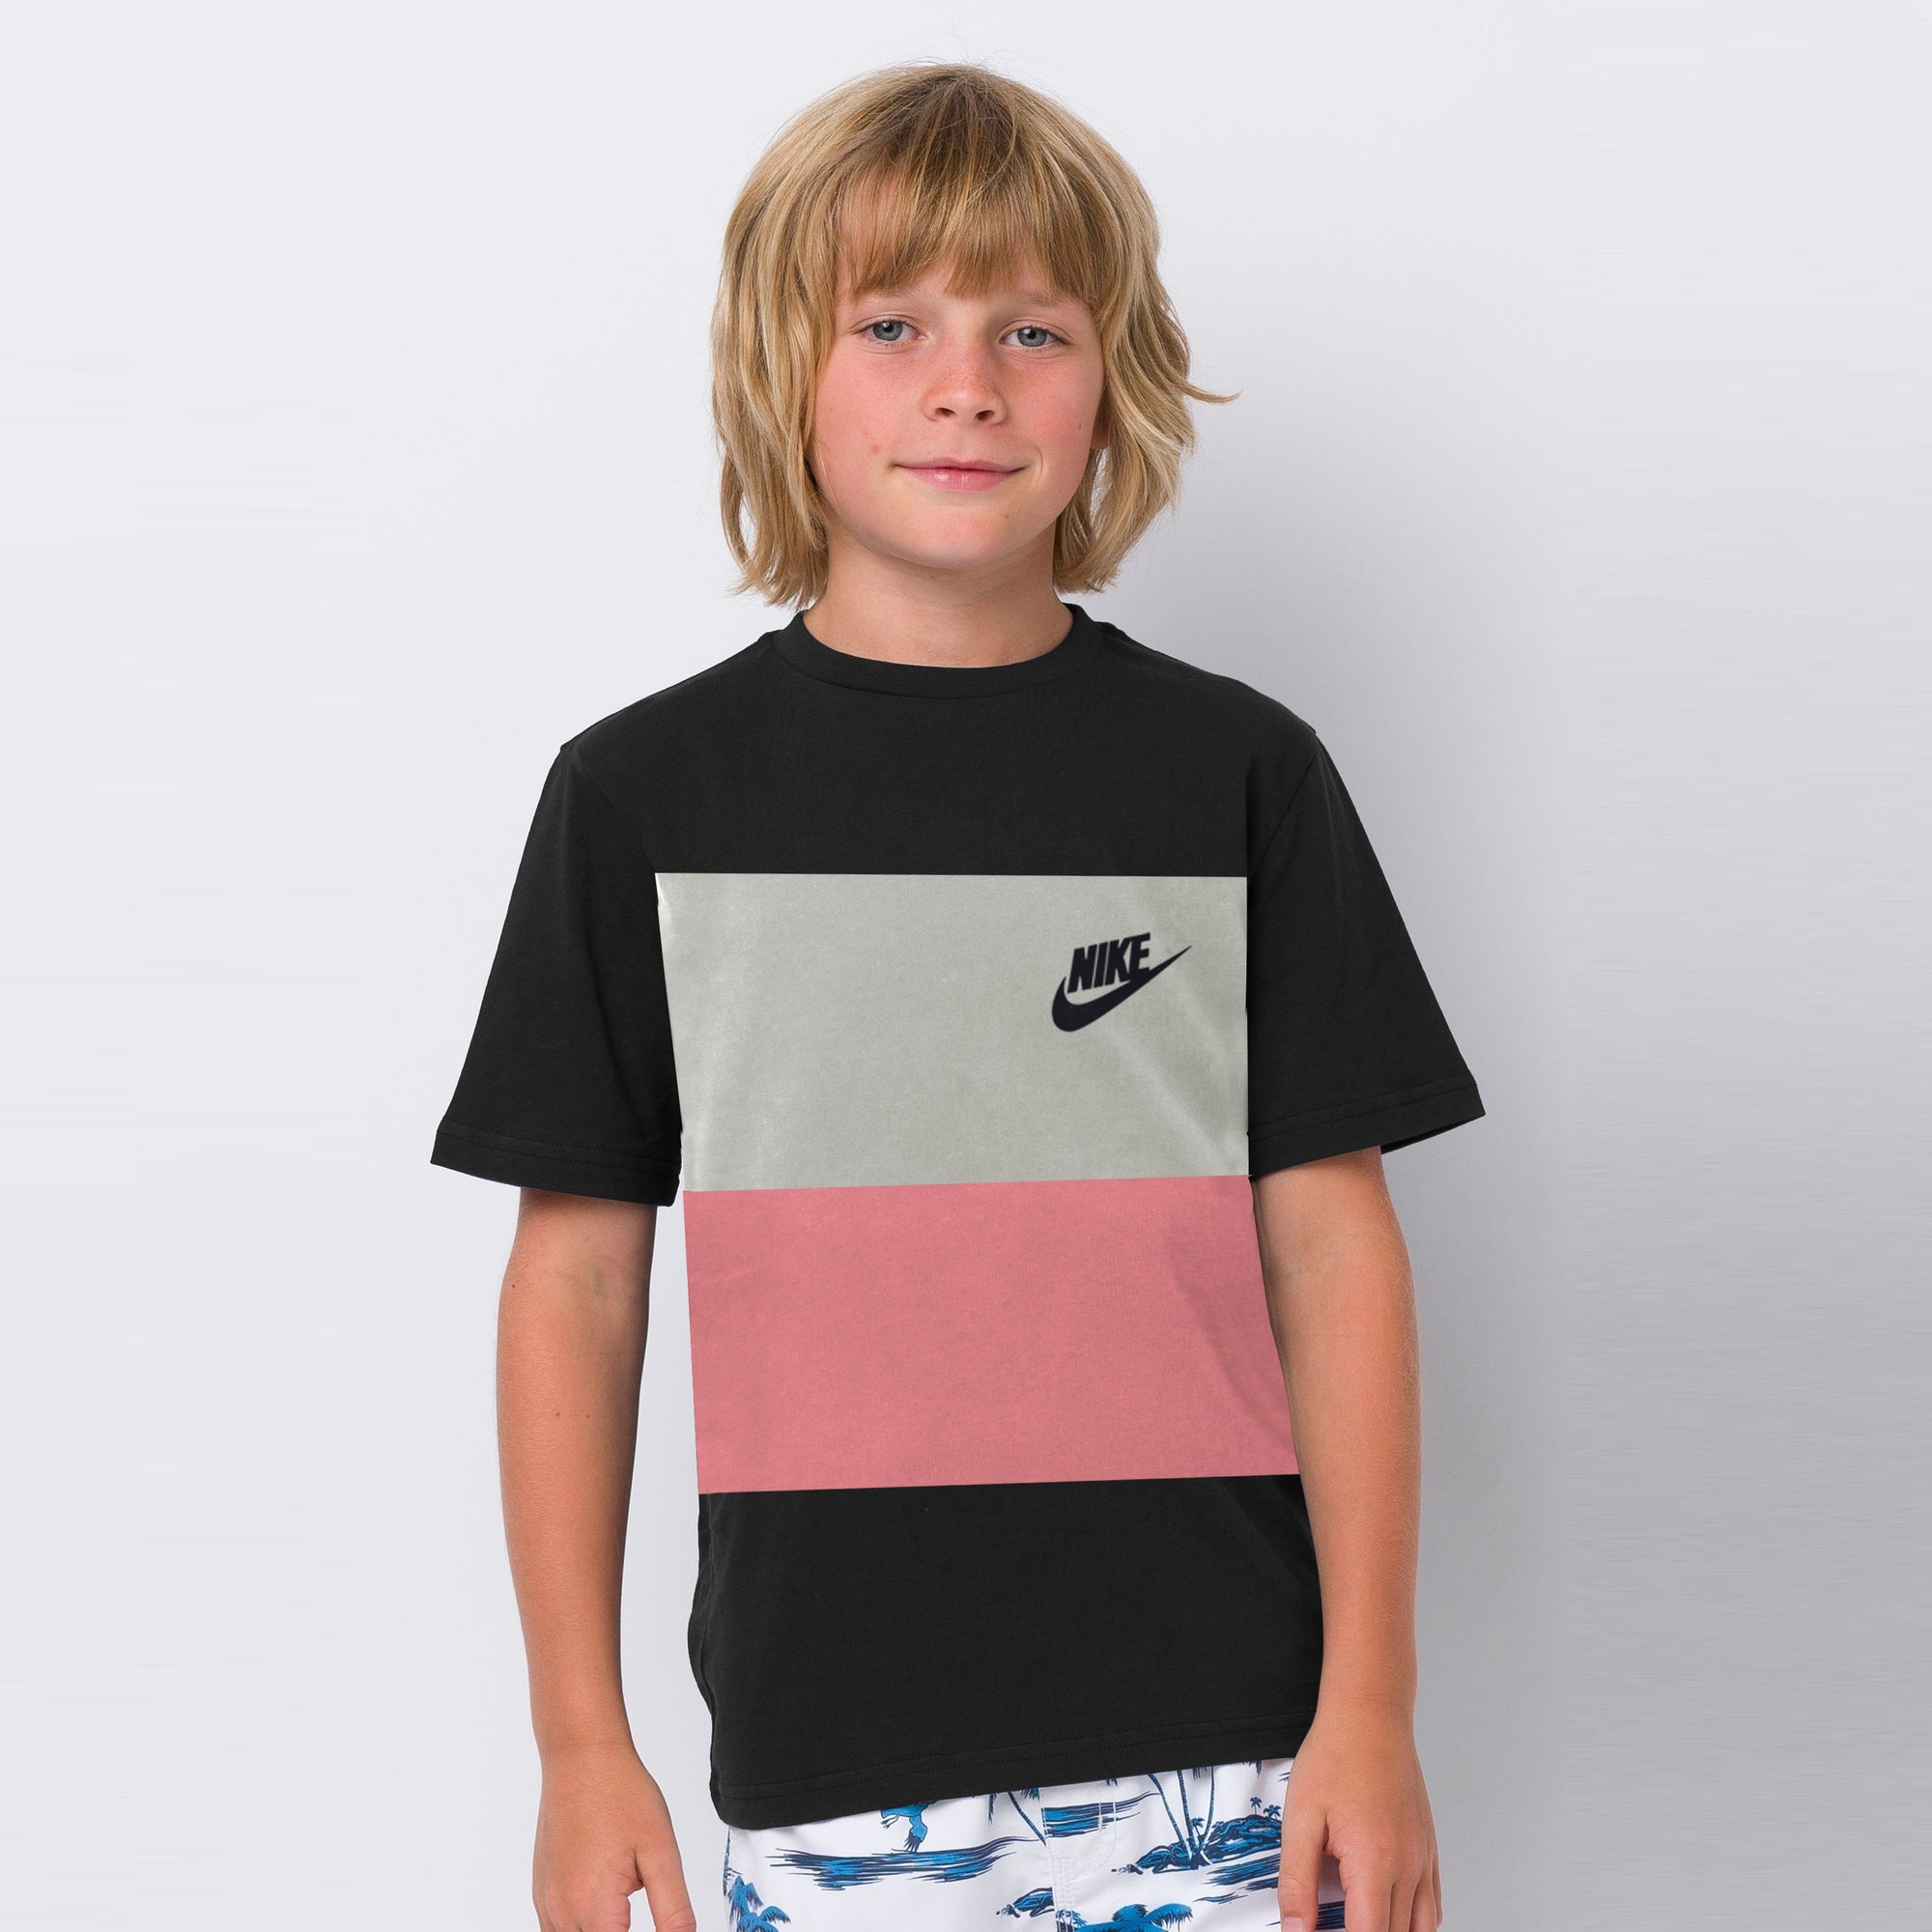 NK Crew Neck Single Jersey Short Sleeve Tee Shirt For Boys-Rosy Black with Grey & Light Pink Panel-SP1970